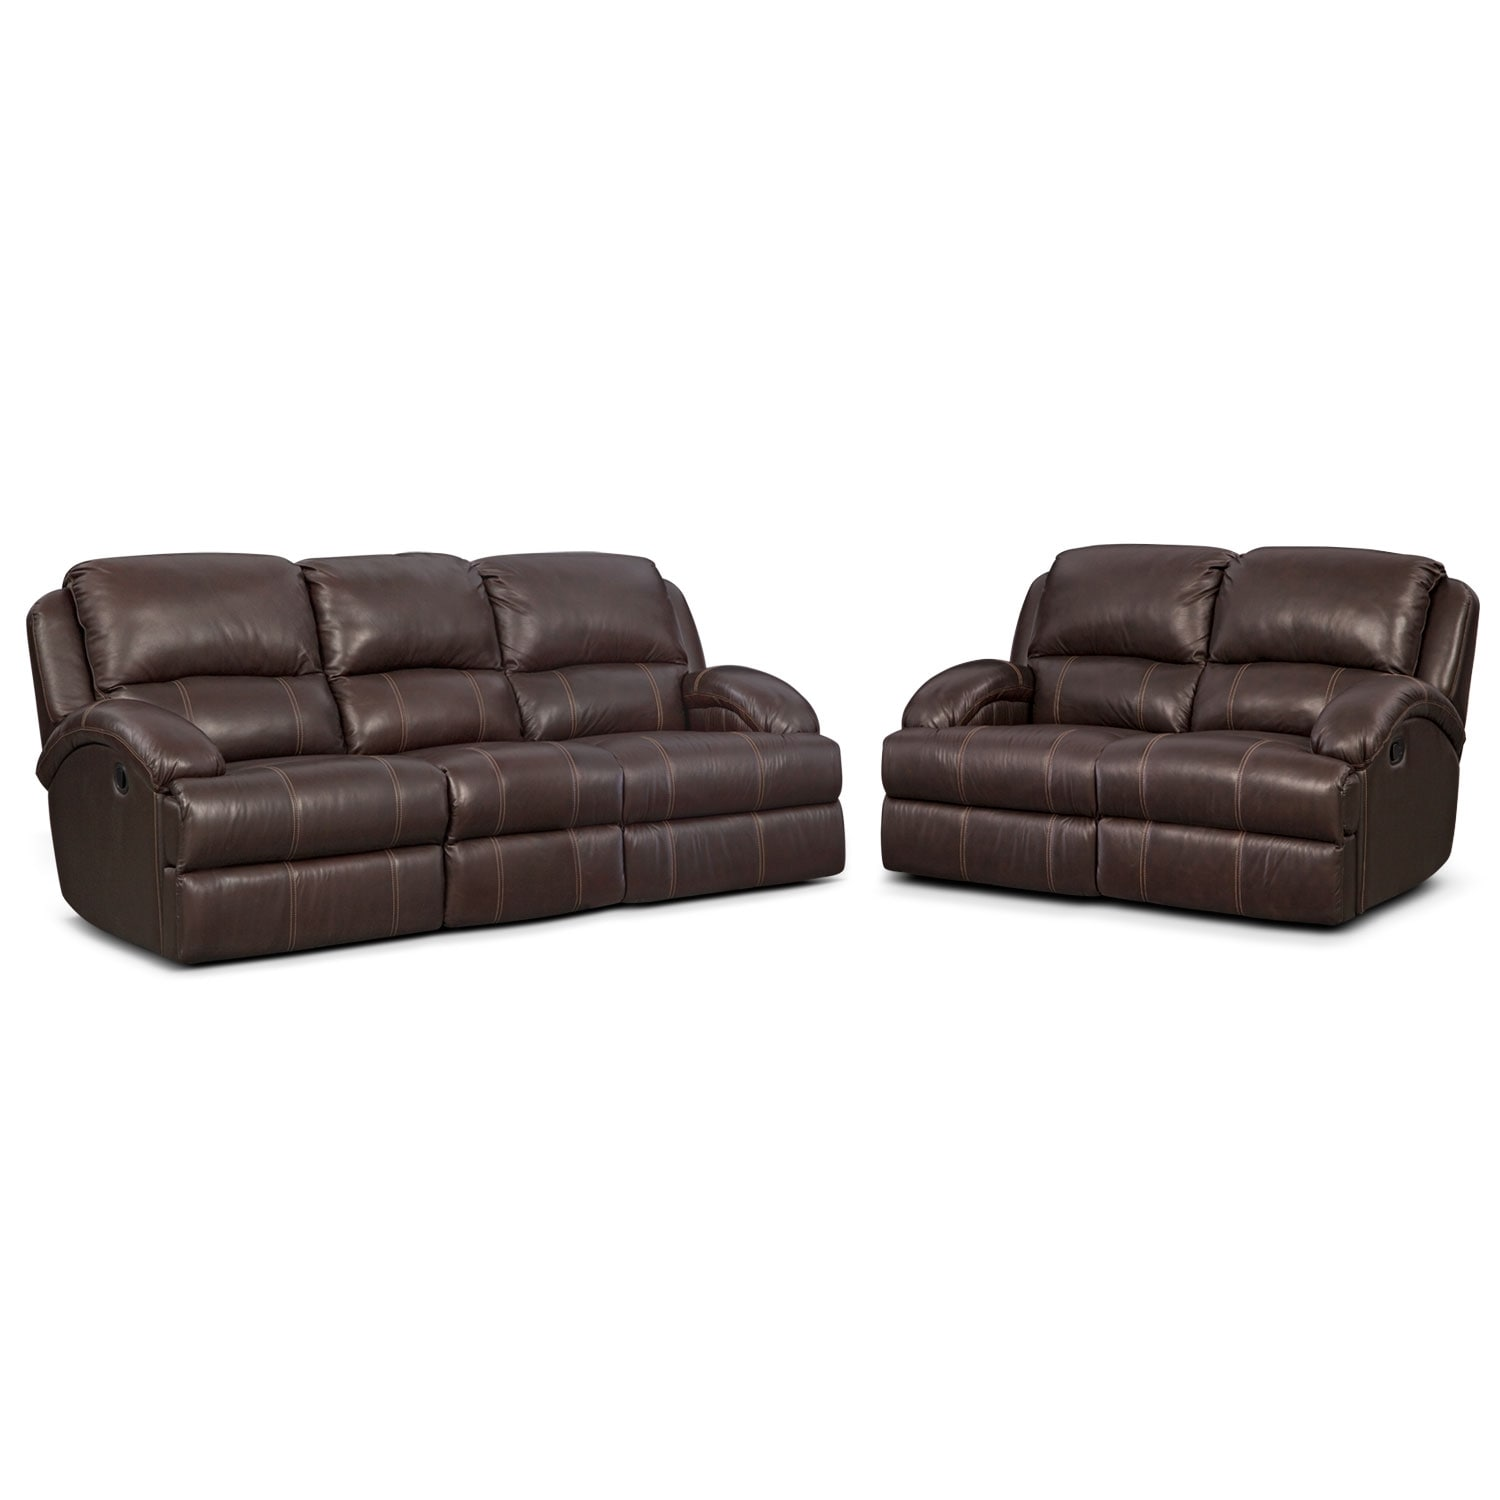 Nolan Dual Reclining Sofa and Reclining Loveseat Set - Chocolate